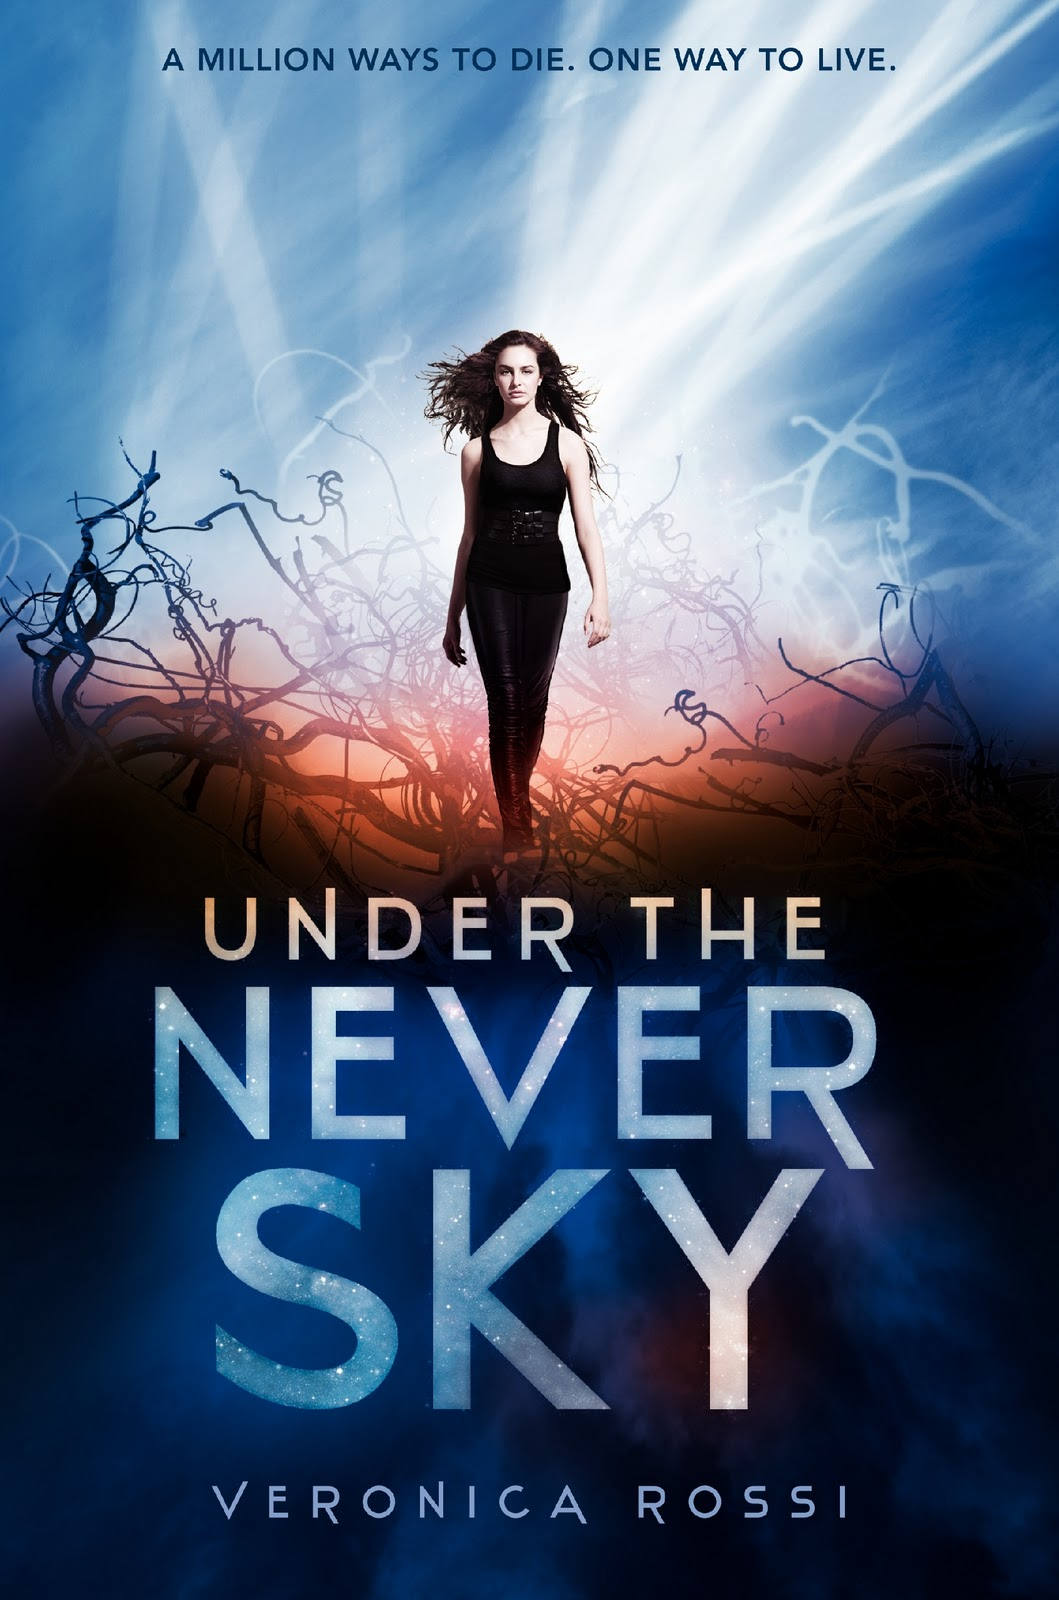 Book Cover Series Review ~ Title under the never sky